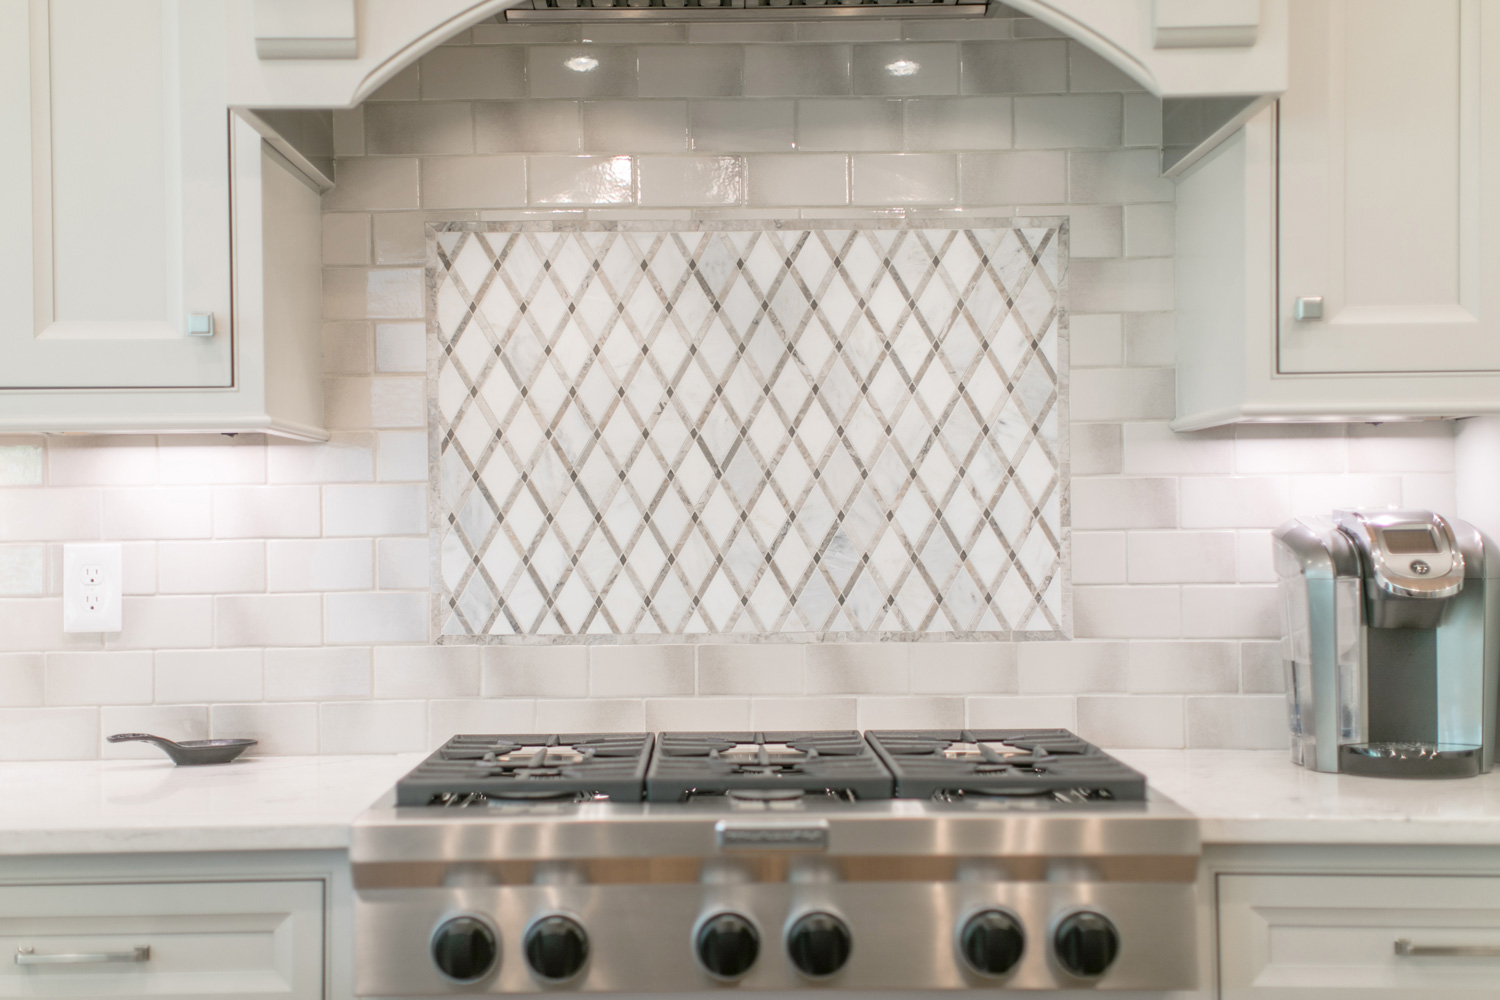 Professional Cooktop Or Range Backsplash Ideas For A Remodel